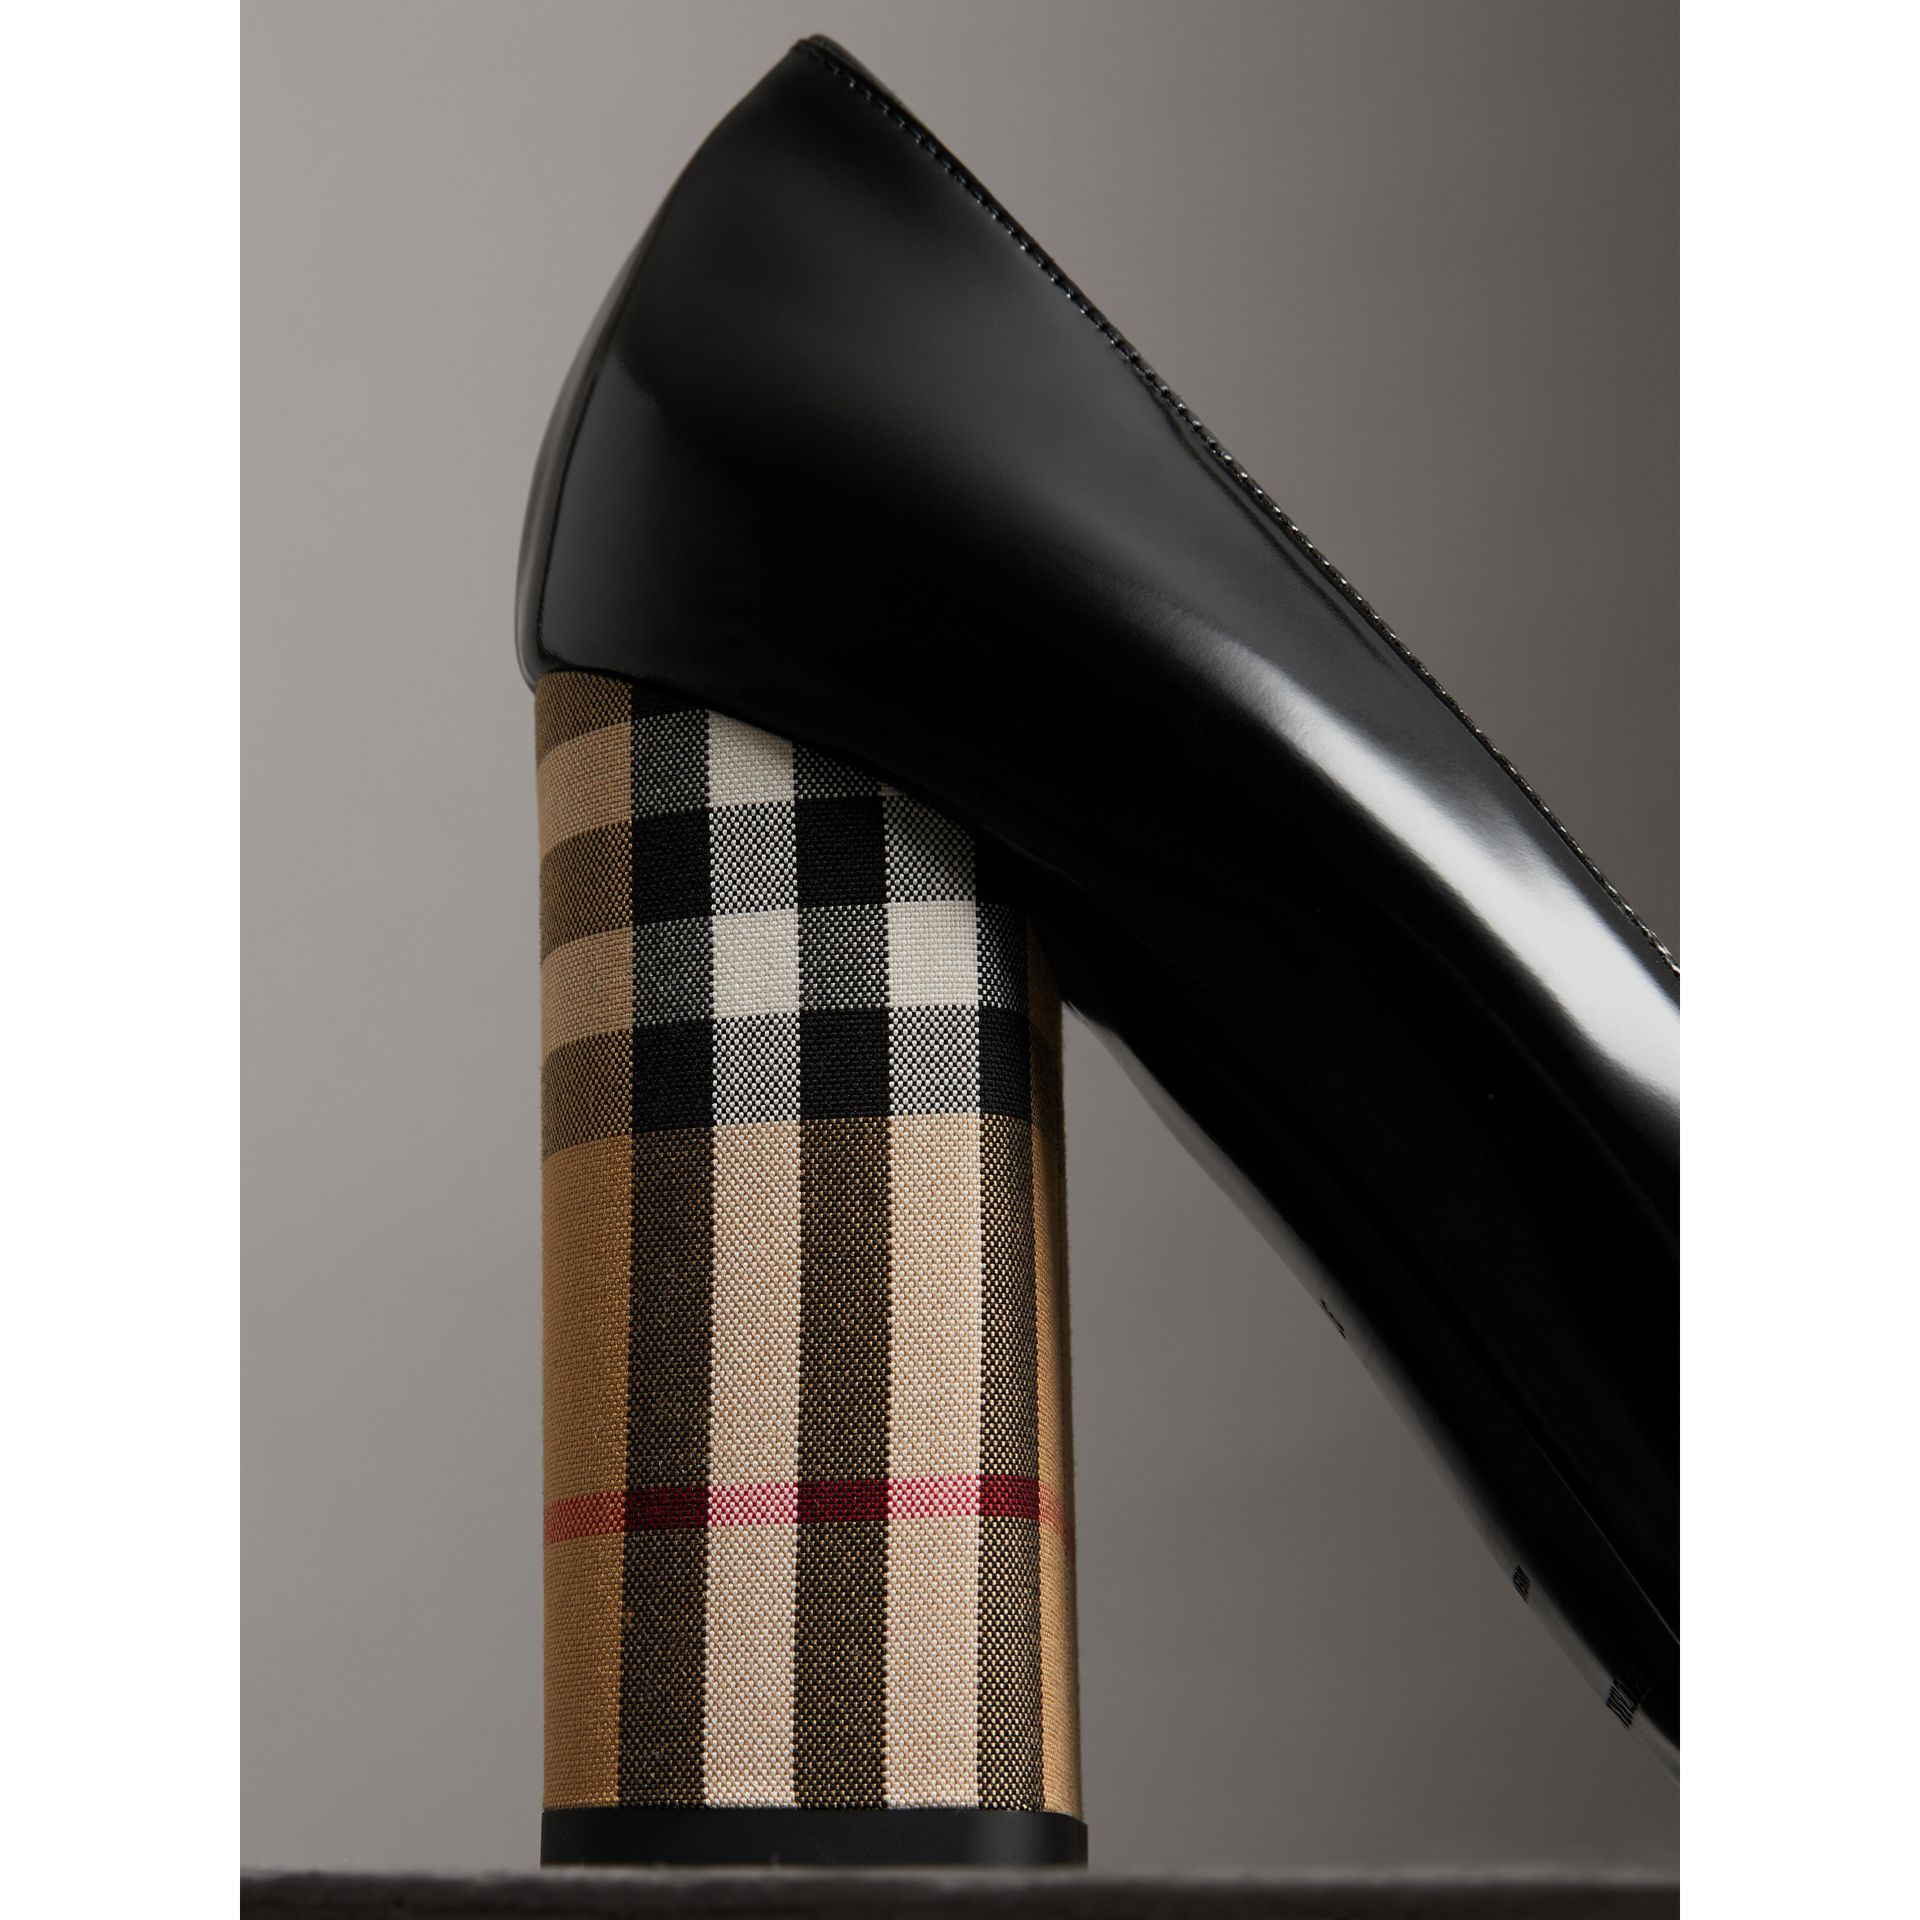 Patent Leather and Vintage Check Block-heel Pumps in Black - Women | Burberry United Kingdom - gallery image 1